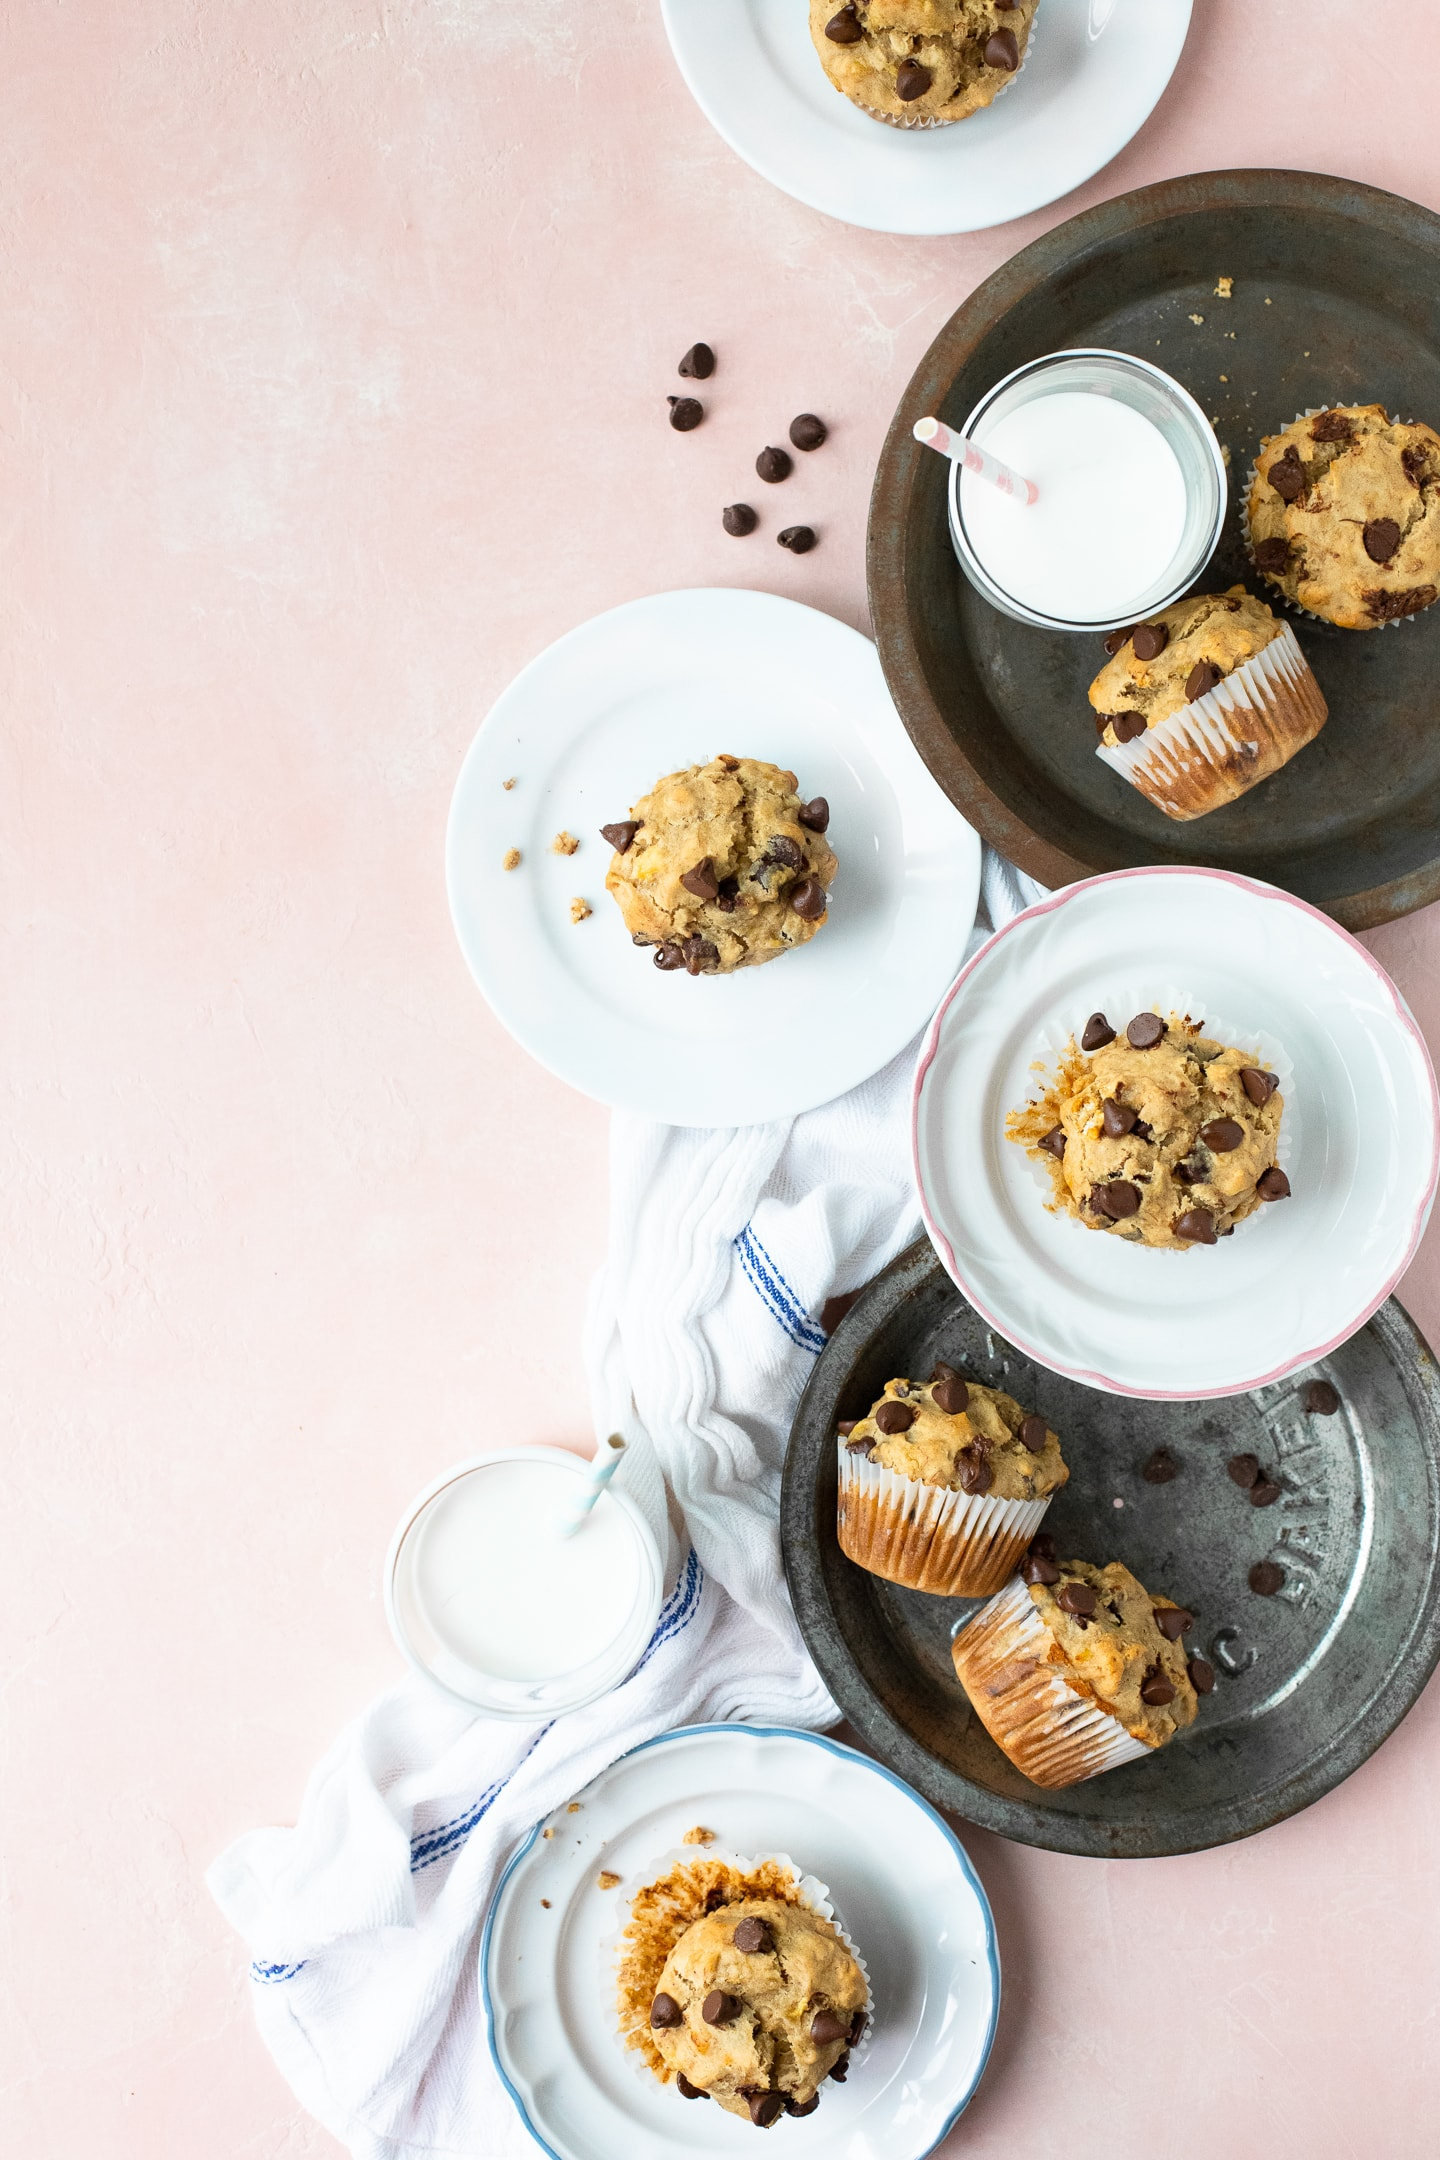 Flatlay view of Peanut Butter Banana Chocolate Chip Muffins on various plates, along with a white linen, glasses of milk, and scattered chocolate chips, on a light pink backdrop.